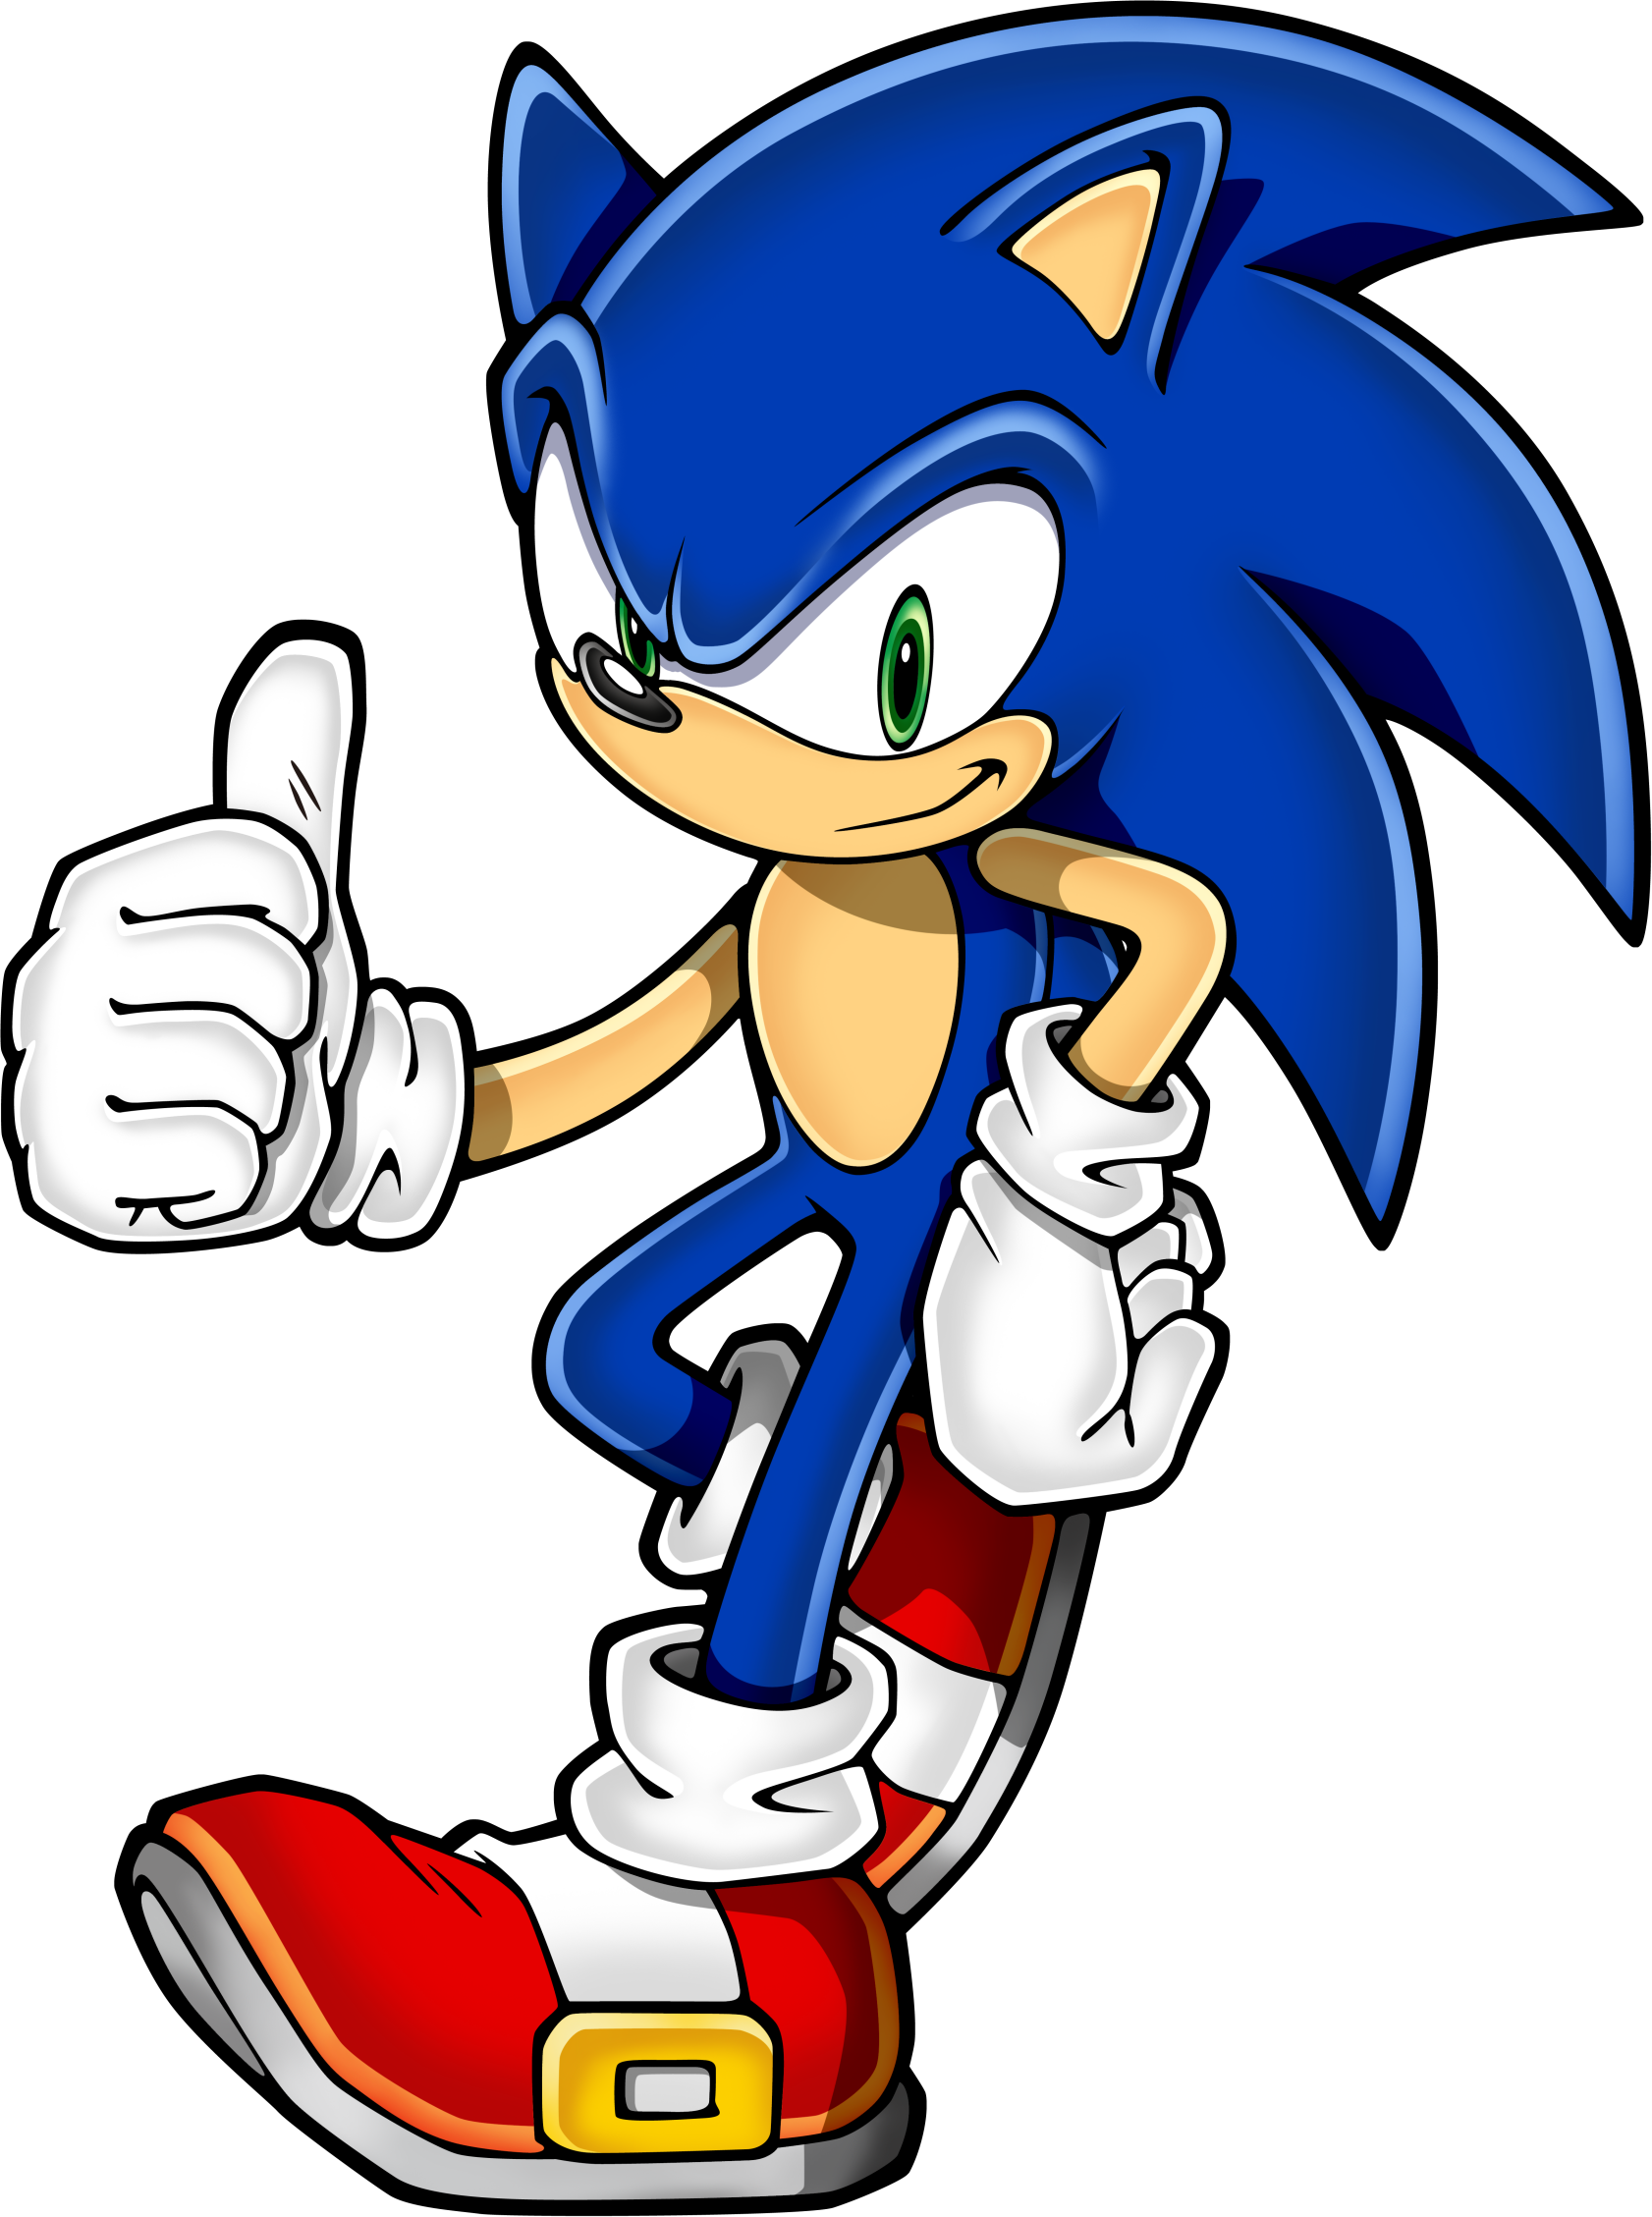 Sonic the hedgehog png. Image united organization toons